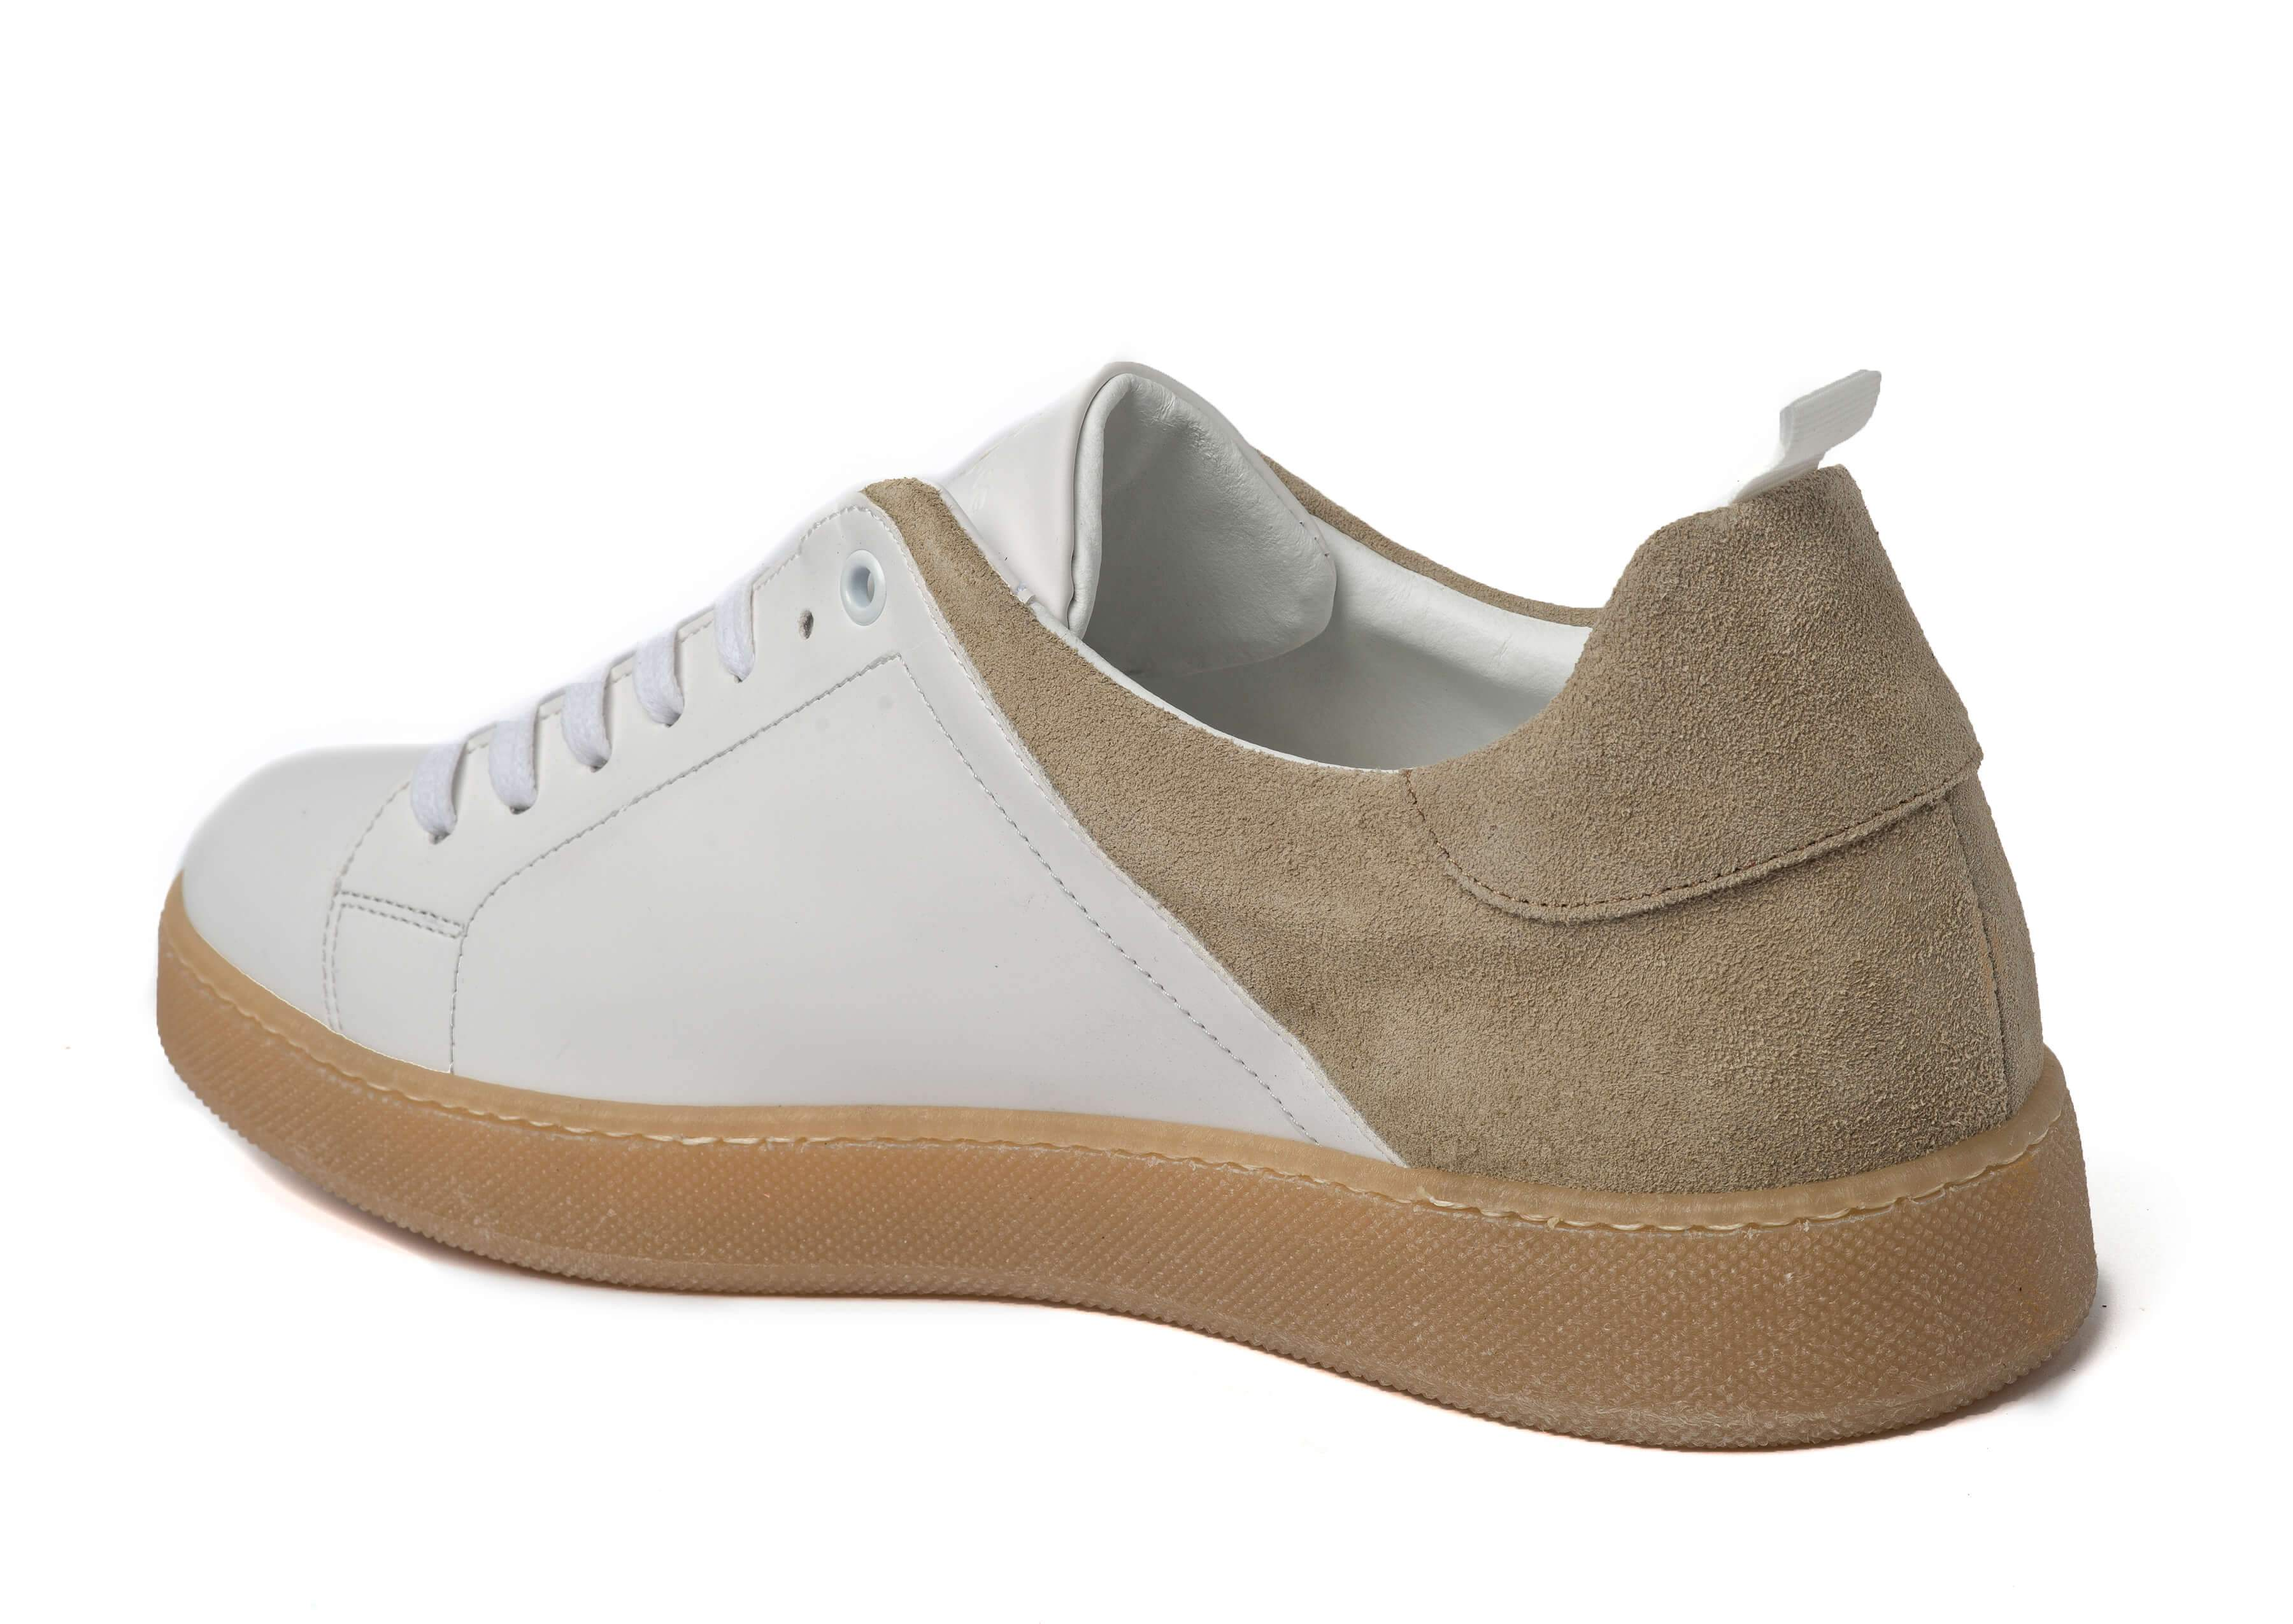 White Beige Sneakers for Men - Left 3839-WB - Jared Lang